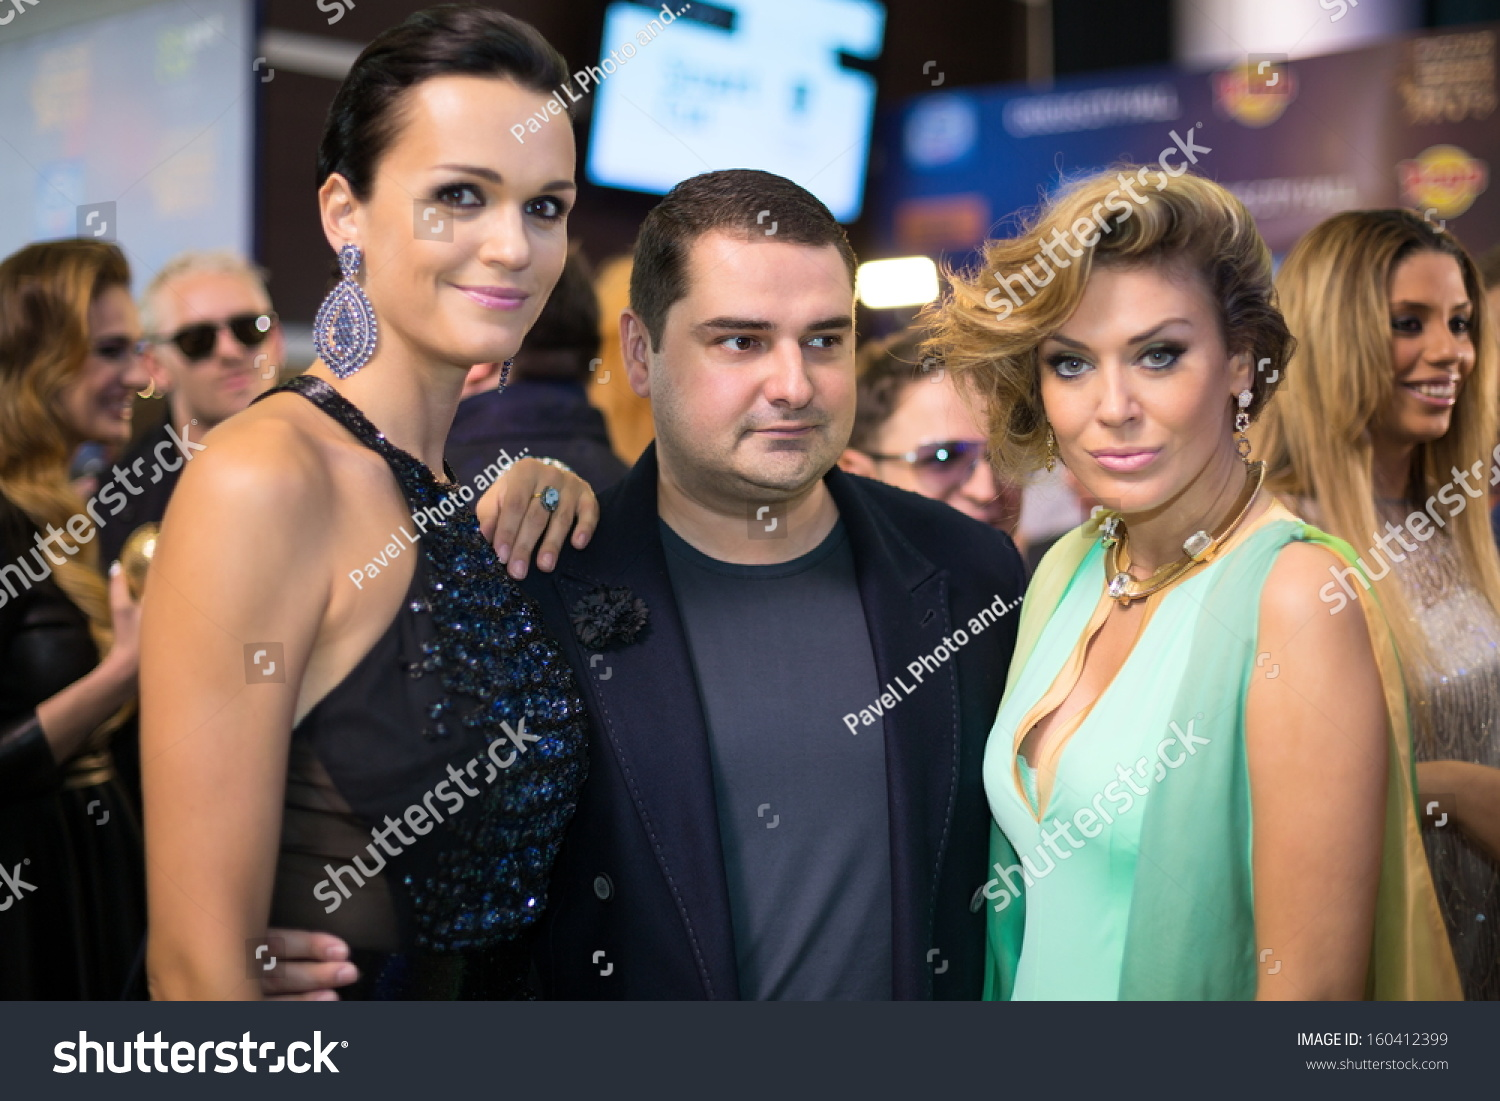 Singer Slava at the People Fashion Awards made a scandal 06/22/2011 99